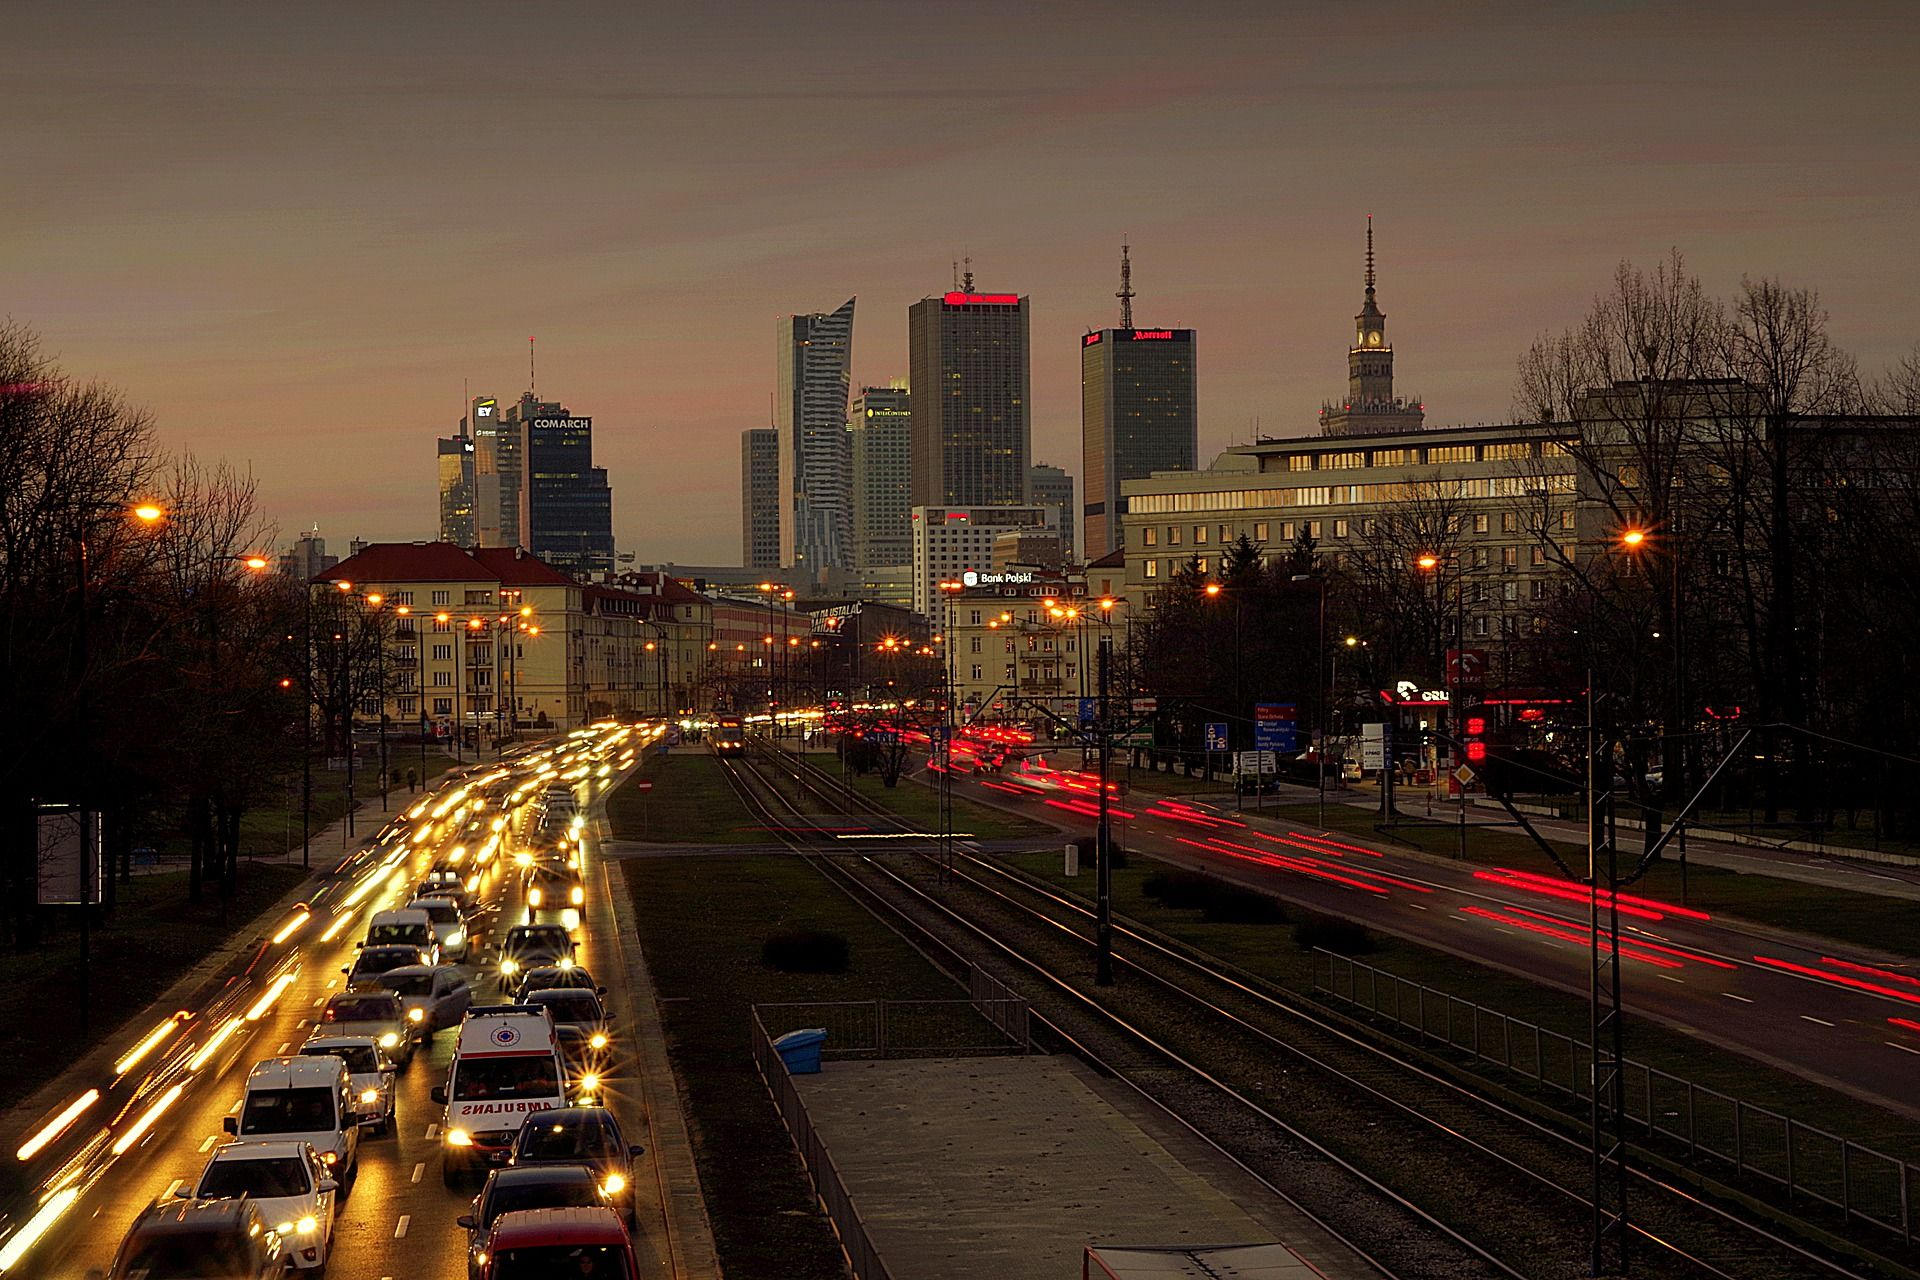 Image of a busy street with nighttime traffic in Warsaw.